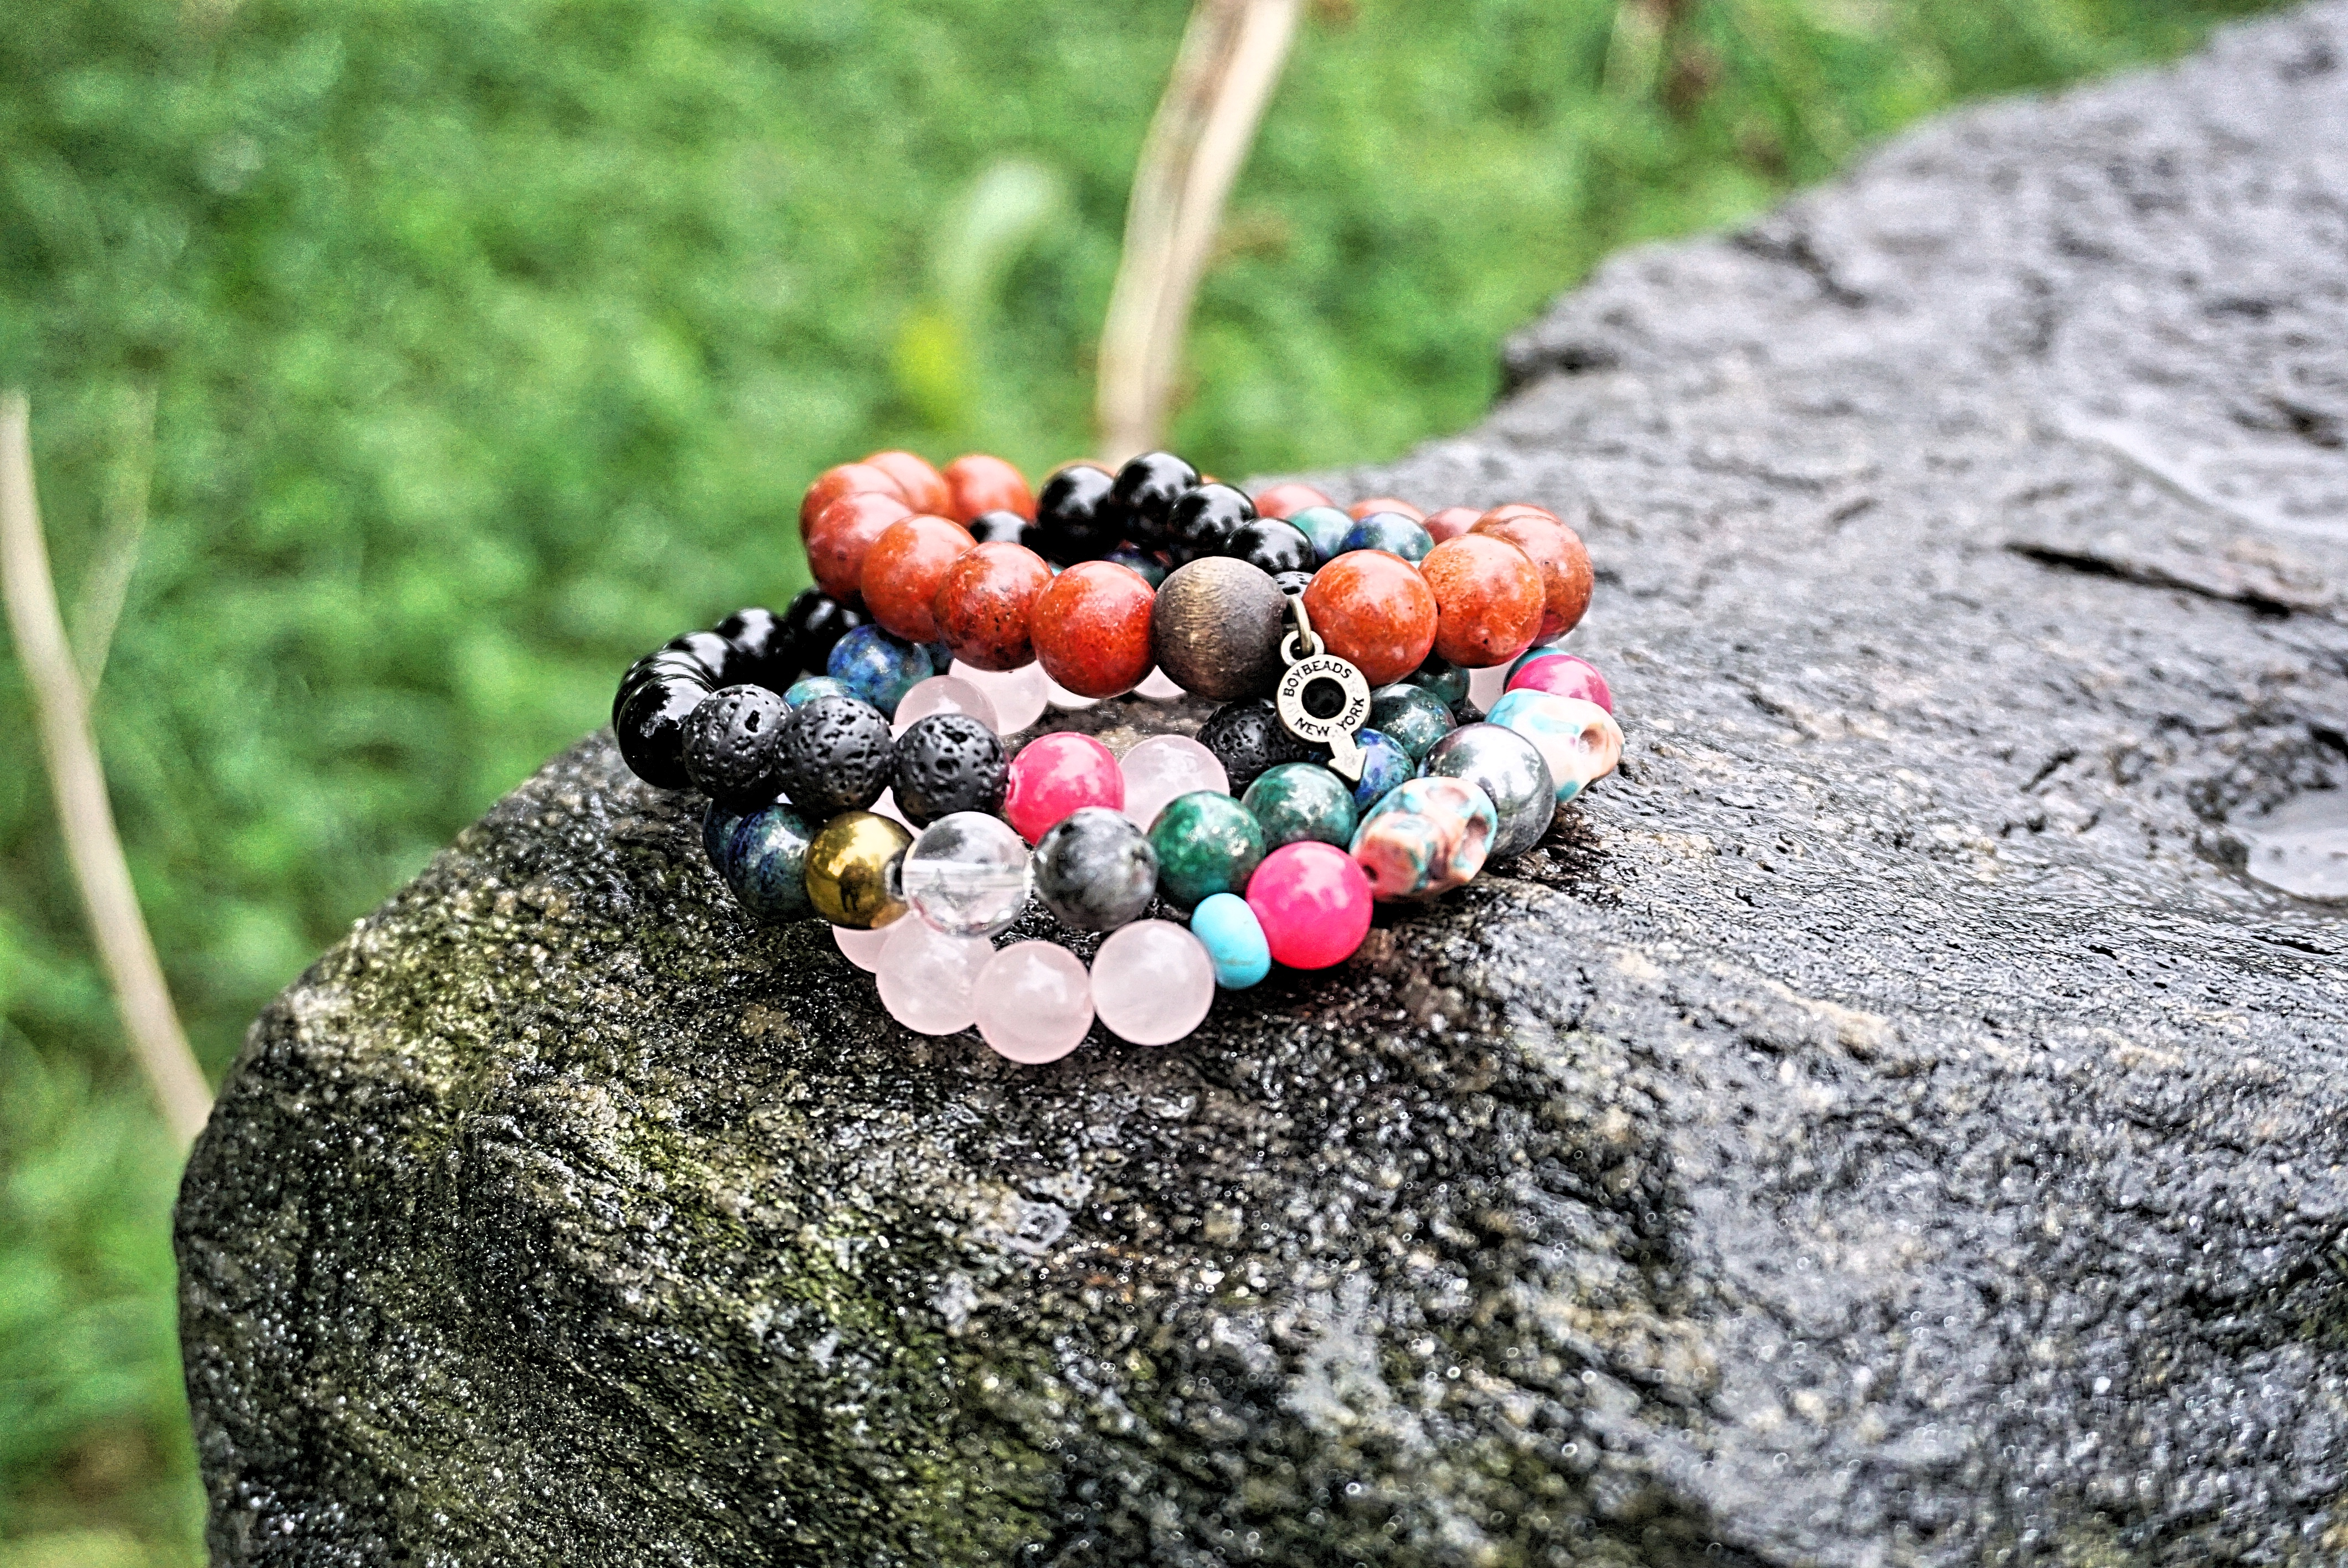 boybeads-charity-collection-bead-bracelets-for-guys-for-a-good-cause-new-york.jpg